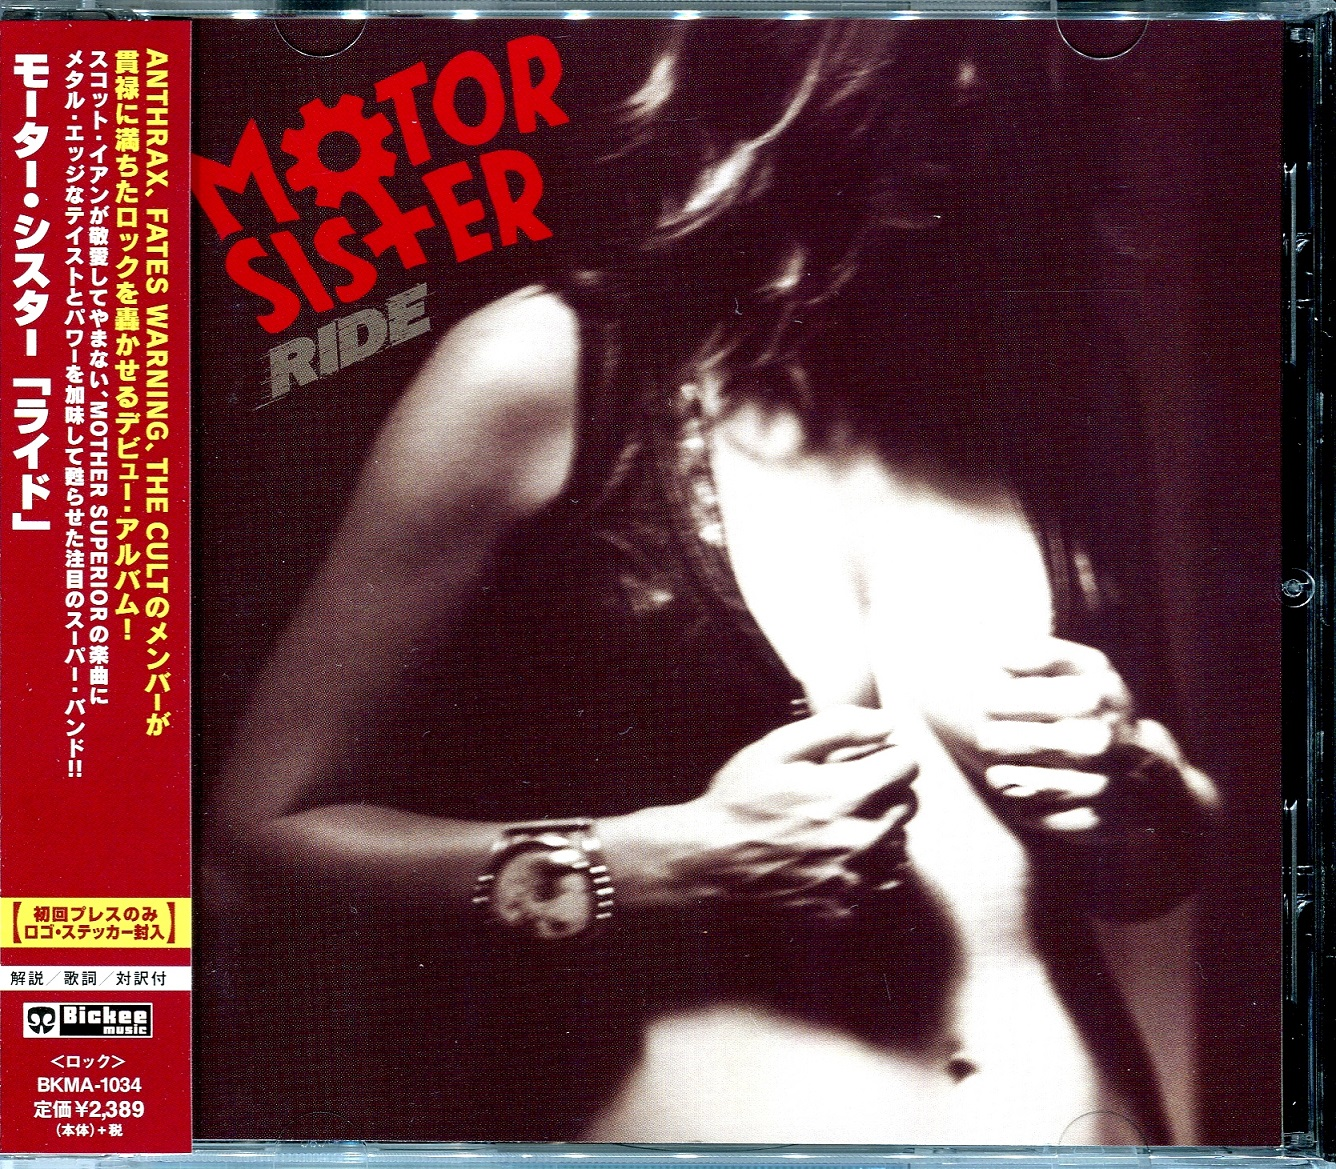 Motor Sister-Ride (2015 Japanese Edition)